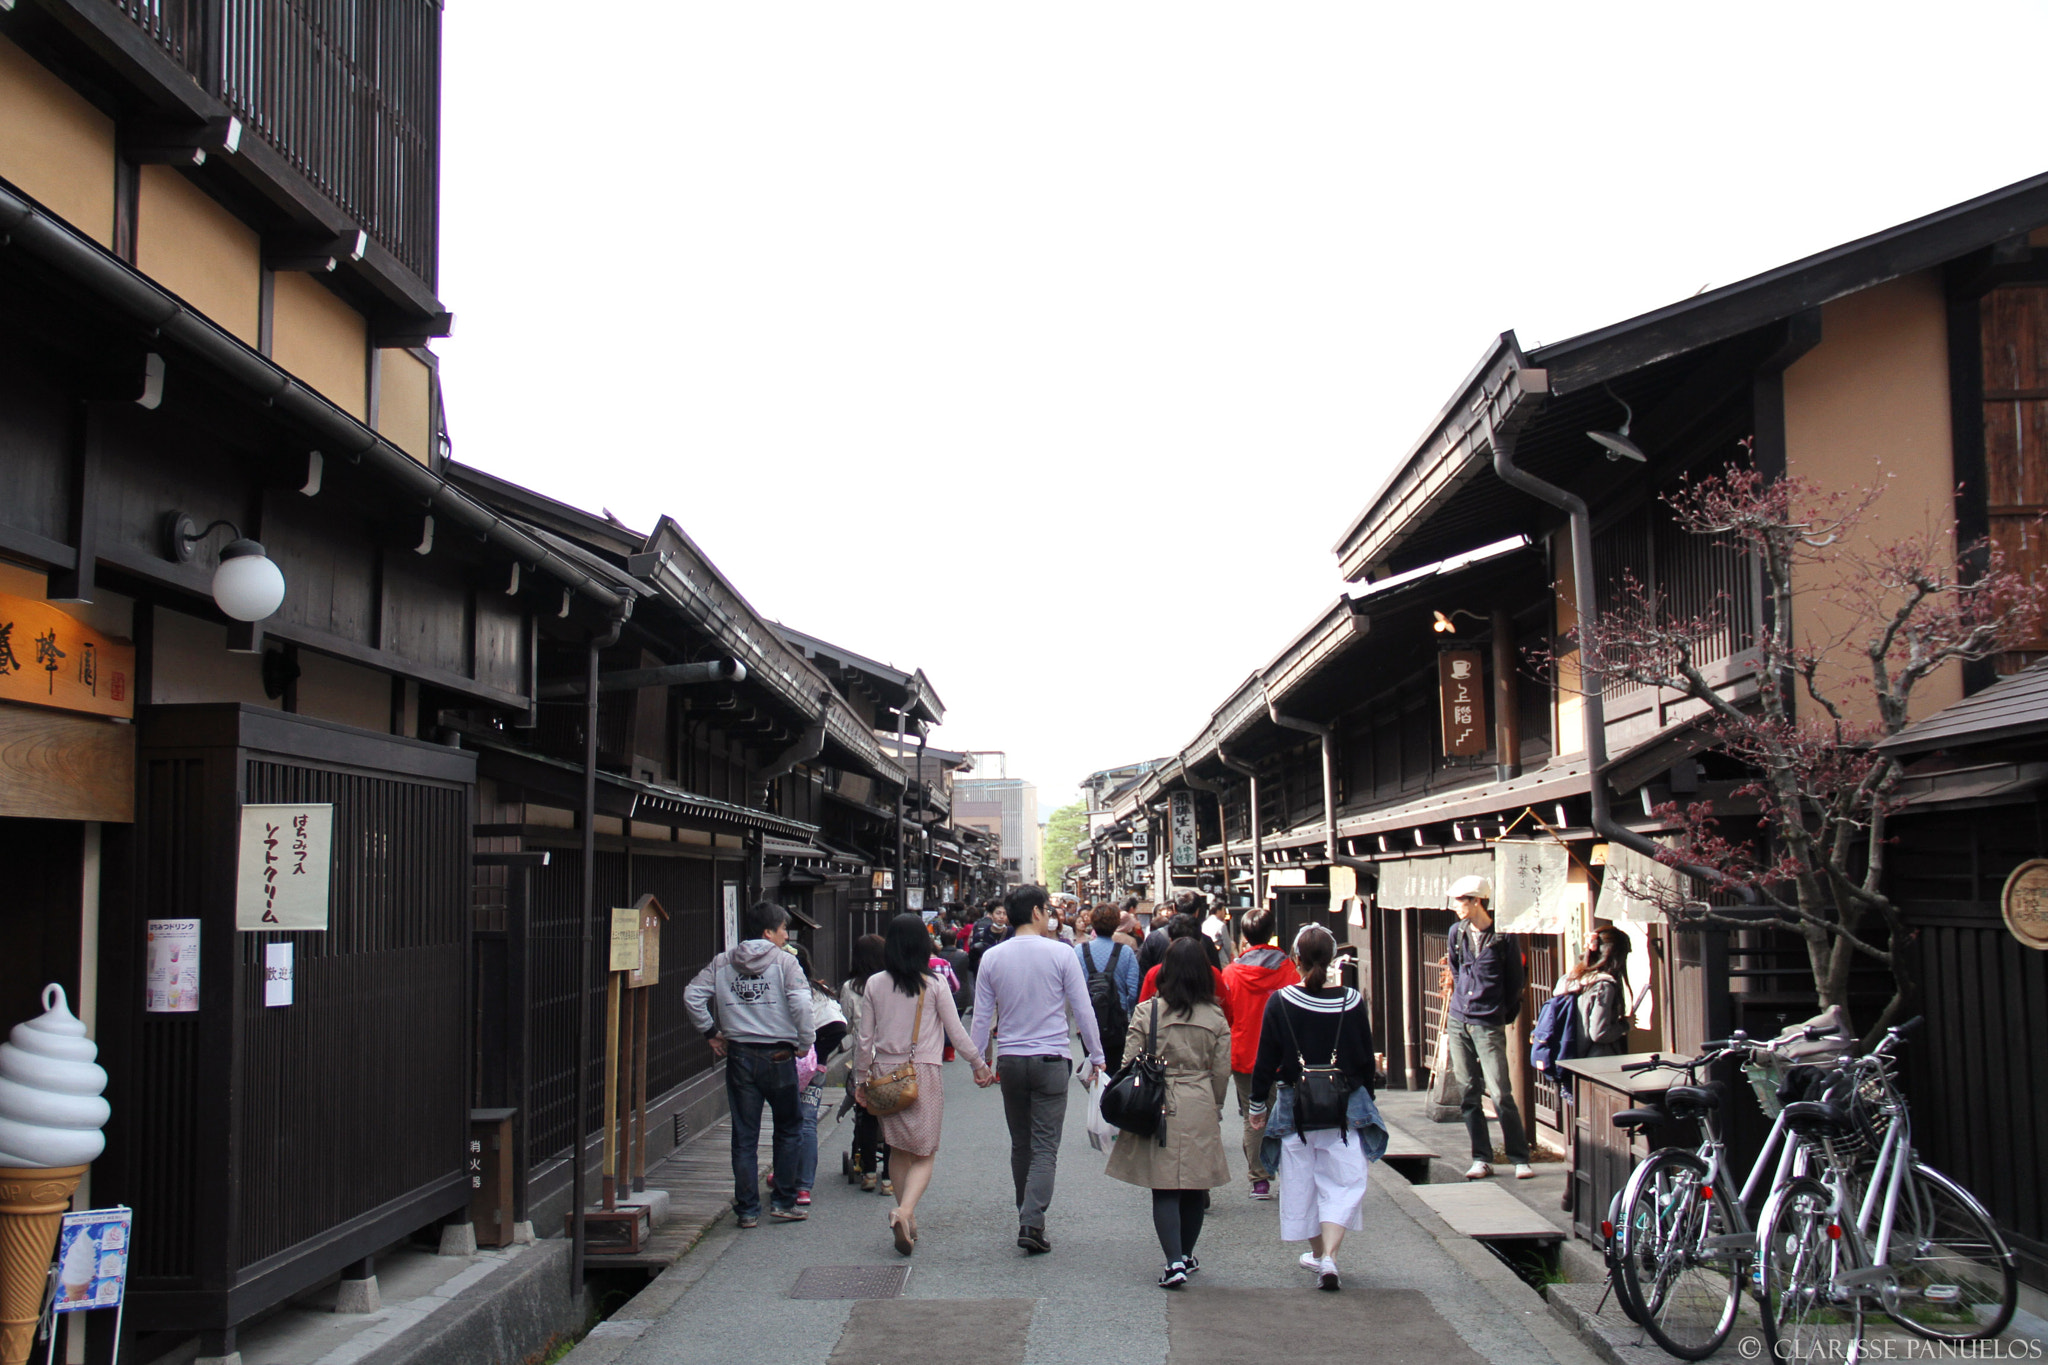 1eb74e1dbc4c6b181cc0374085df578f - Japan Travel Blog April 2015: Takayama Old Town